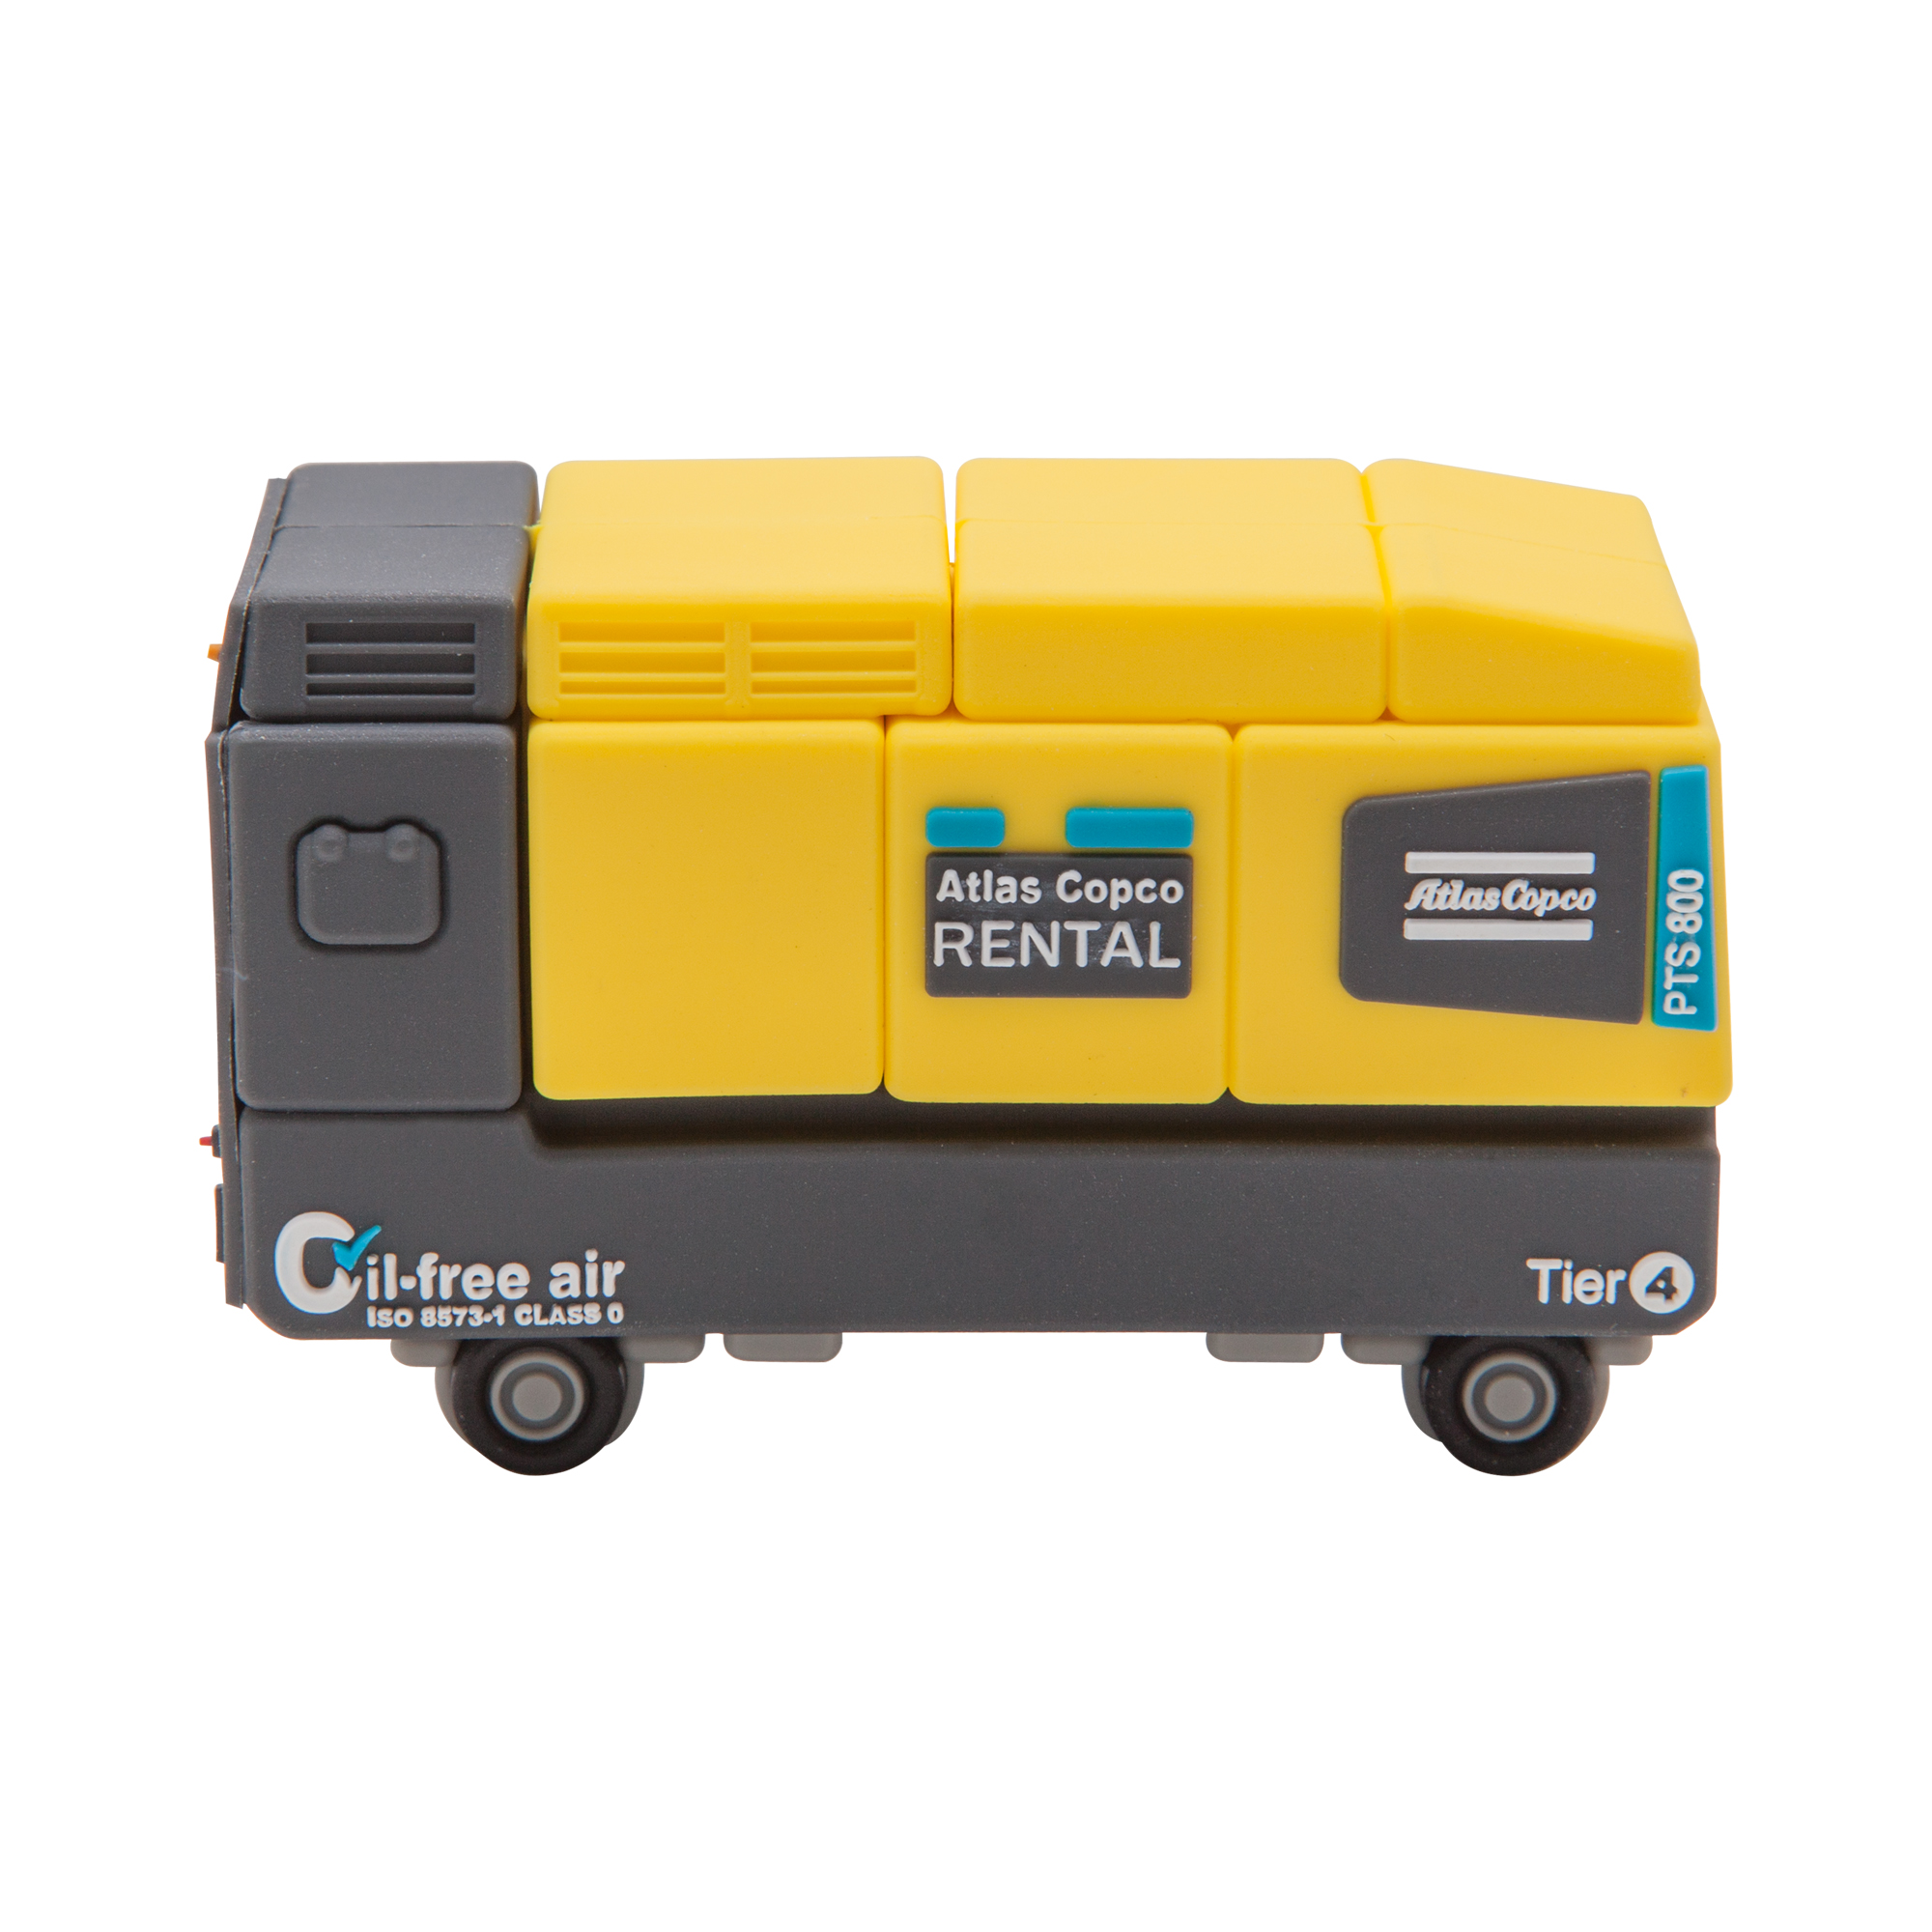 USB Memory in same shape as the Atlas Copco PTS 800. 8 GB capacity. Perfect gift for clients.